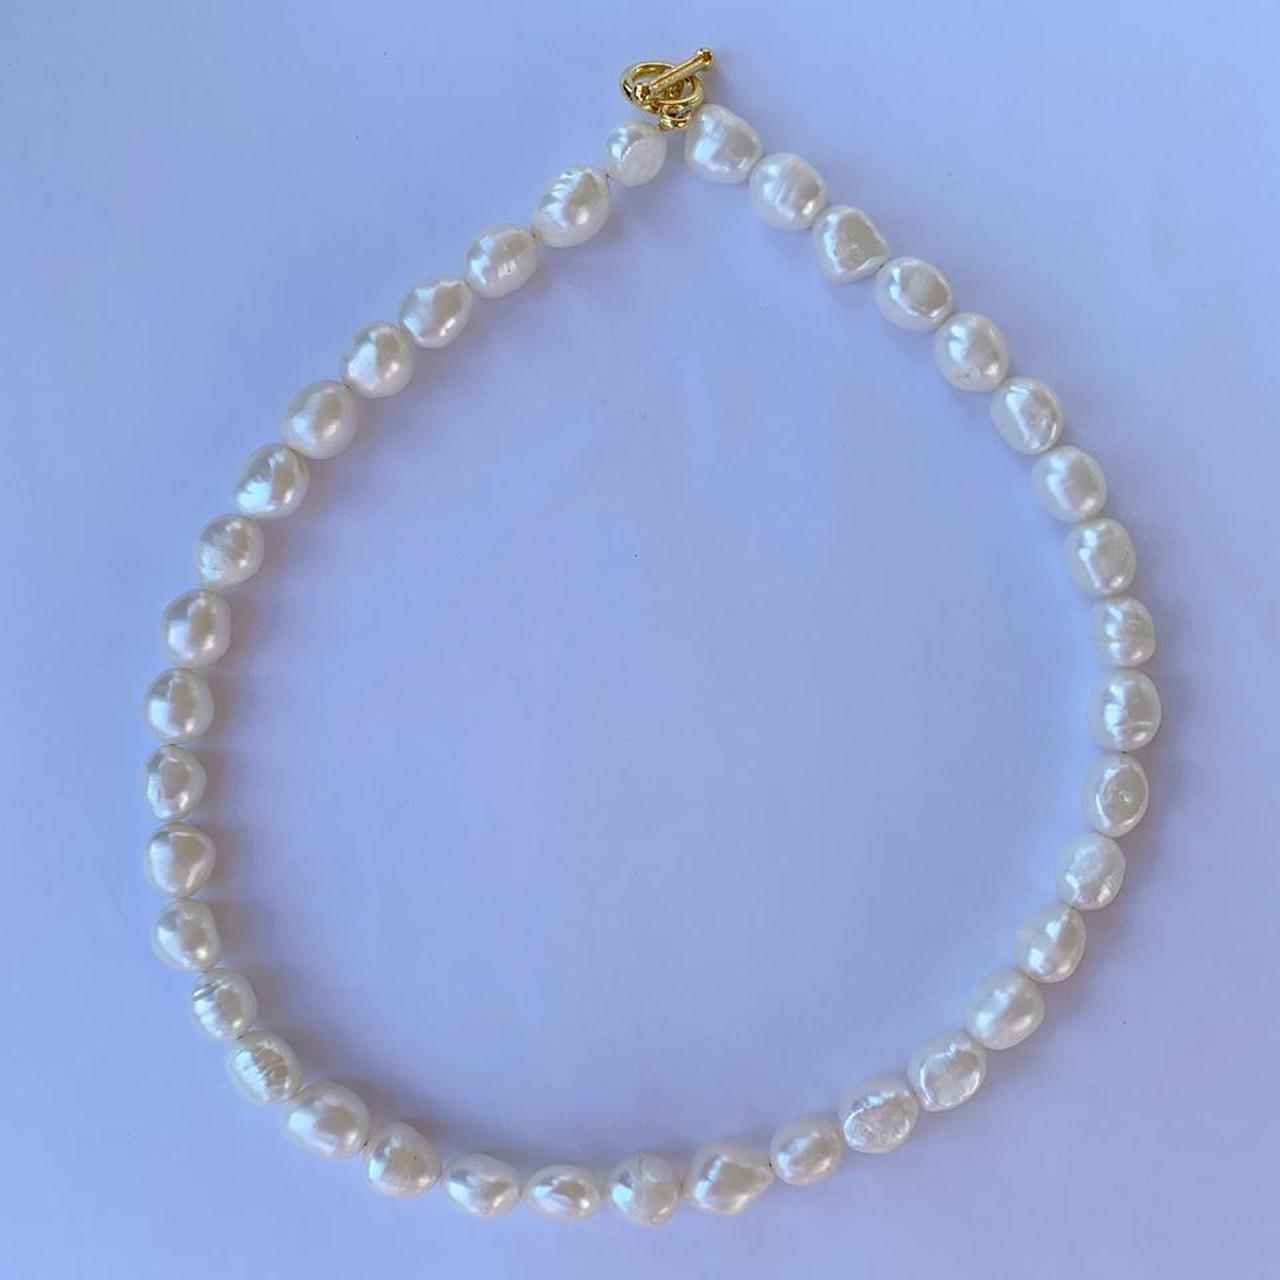 Product Image 1 - Pearl Choker  Genuine high quality pearls!